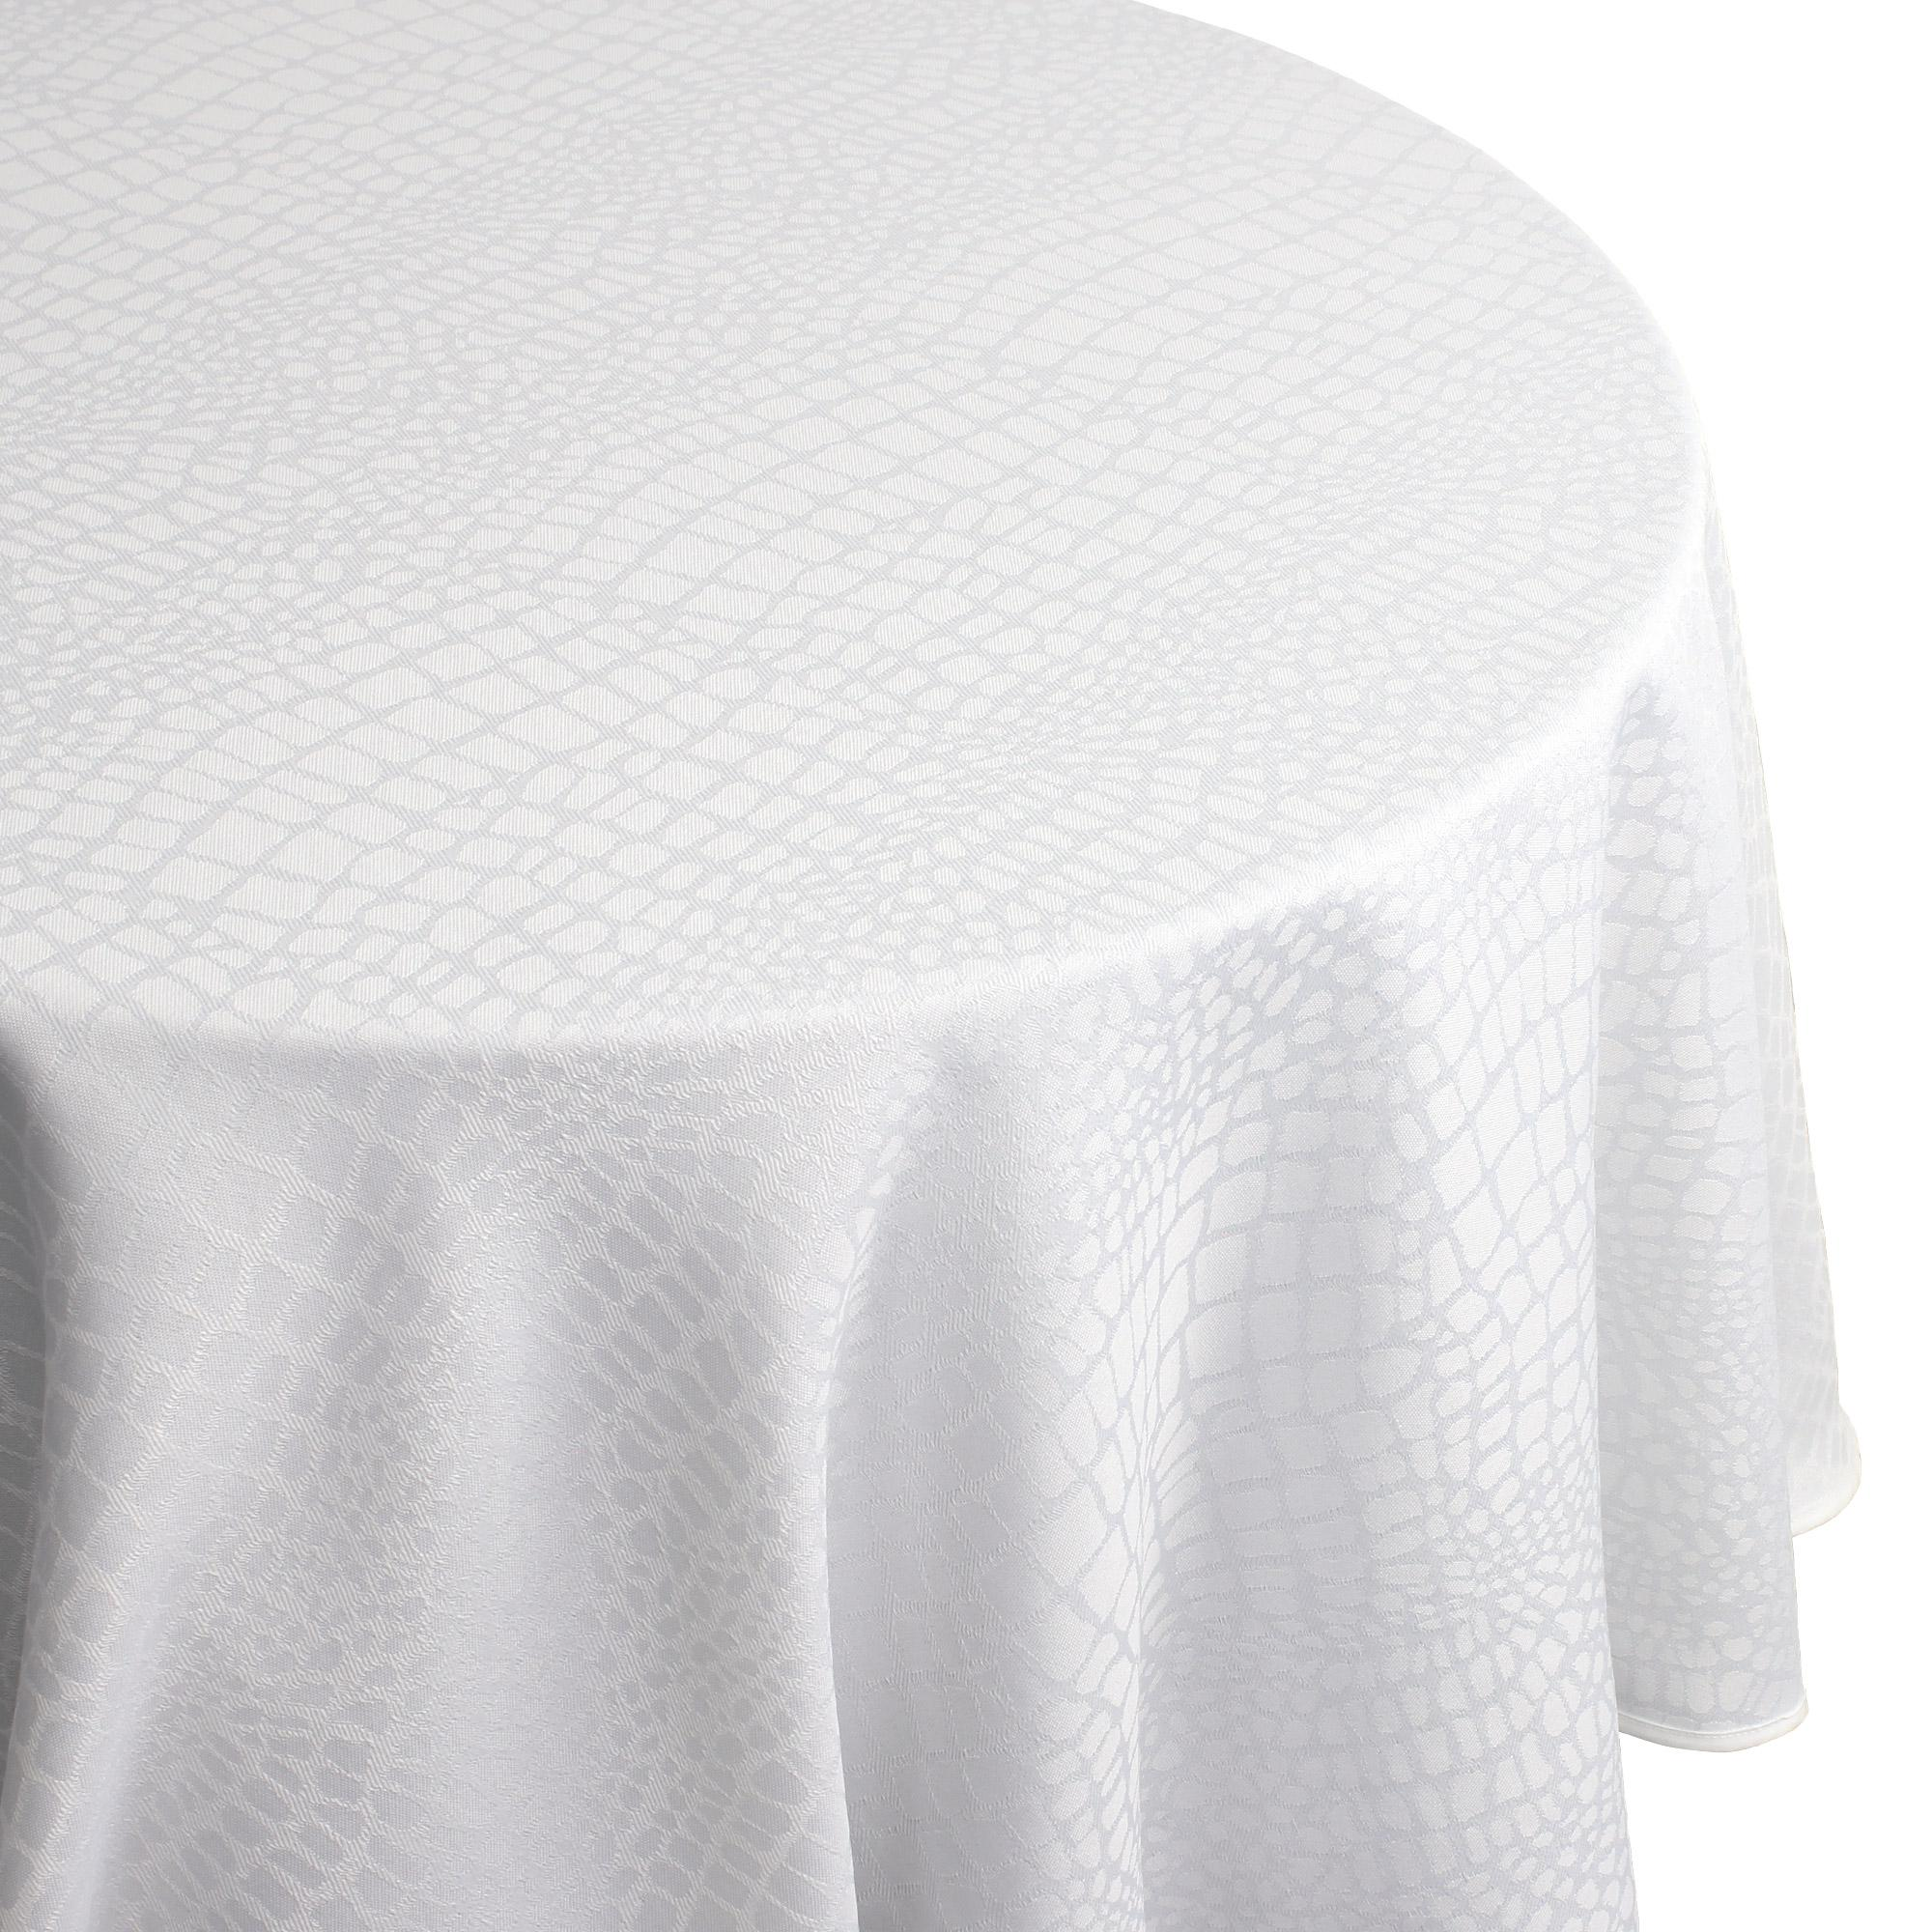 Nappe Blanche Tissu Nappe Ovale 180x300 Cm Jacquard 100 Polyester Lounge Blanc